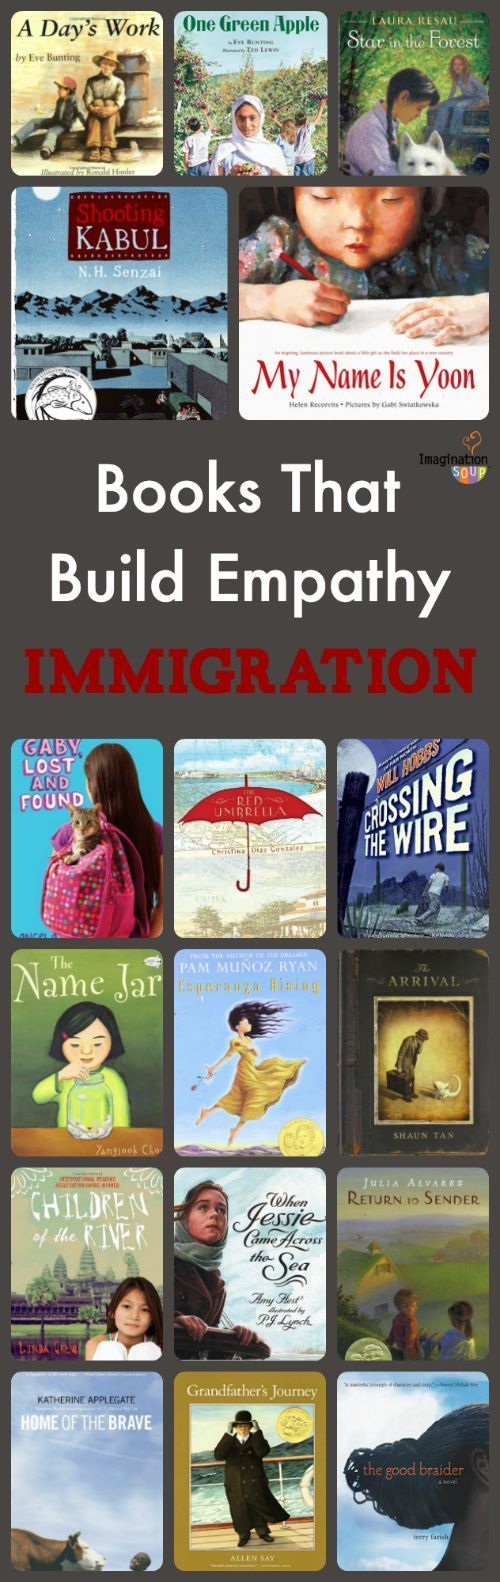 children's books about immigration -- walk a mile in someone else's shoes!